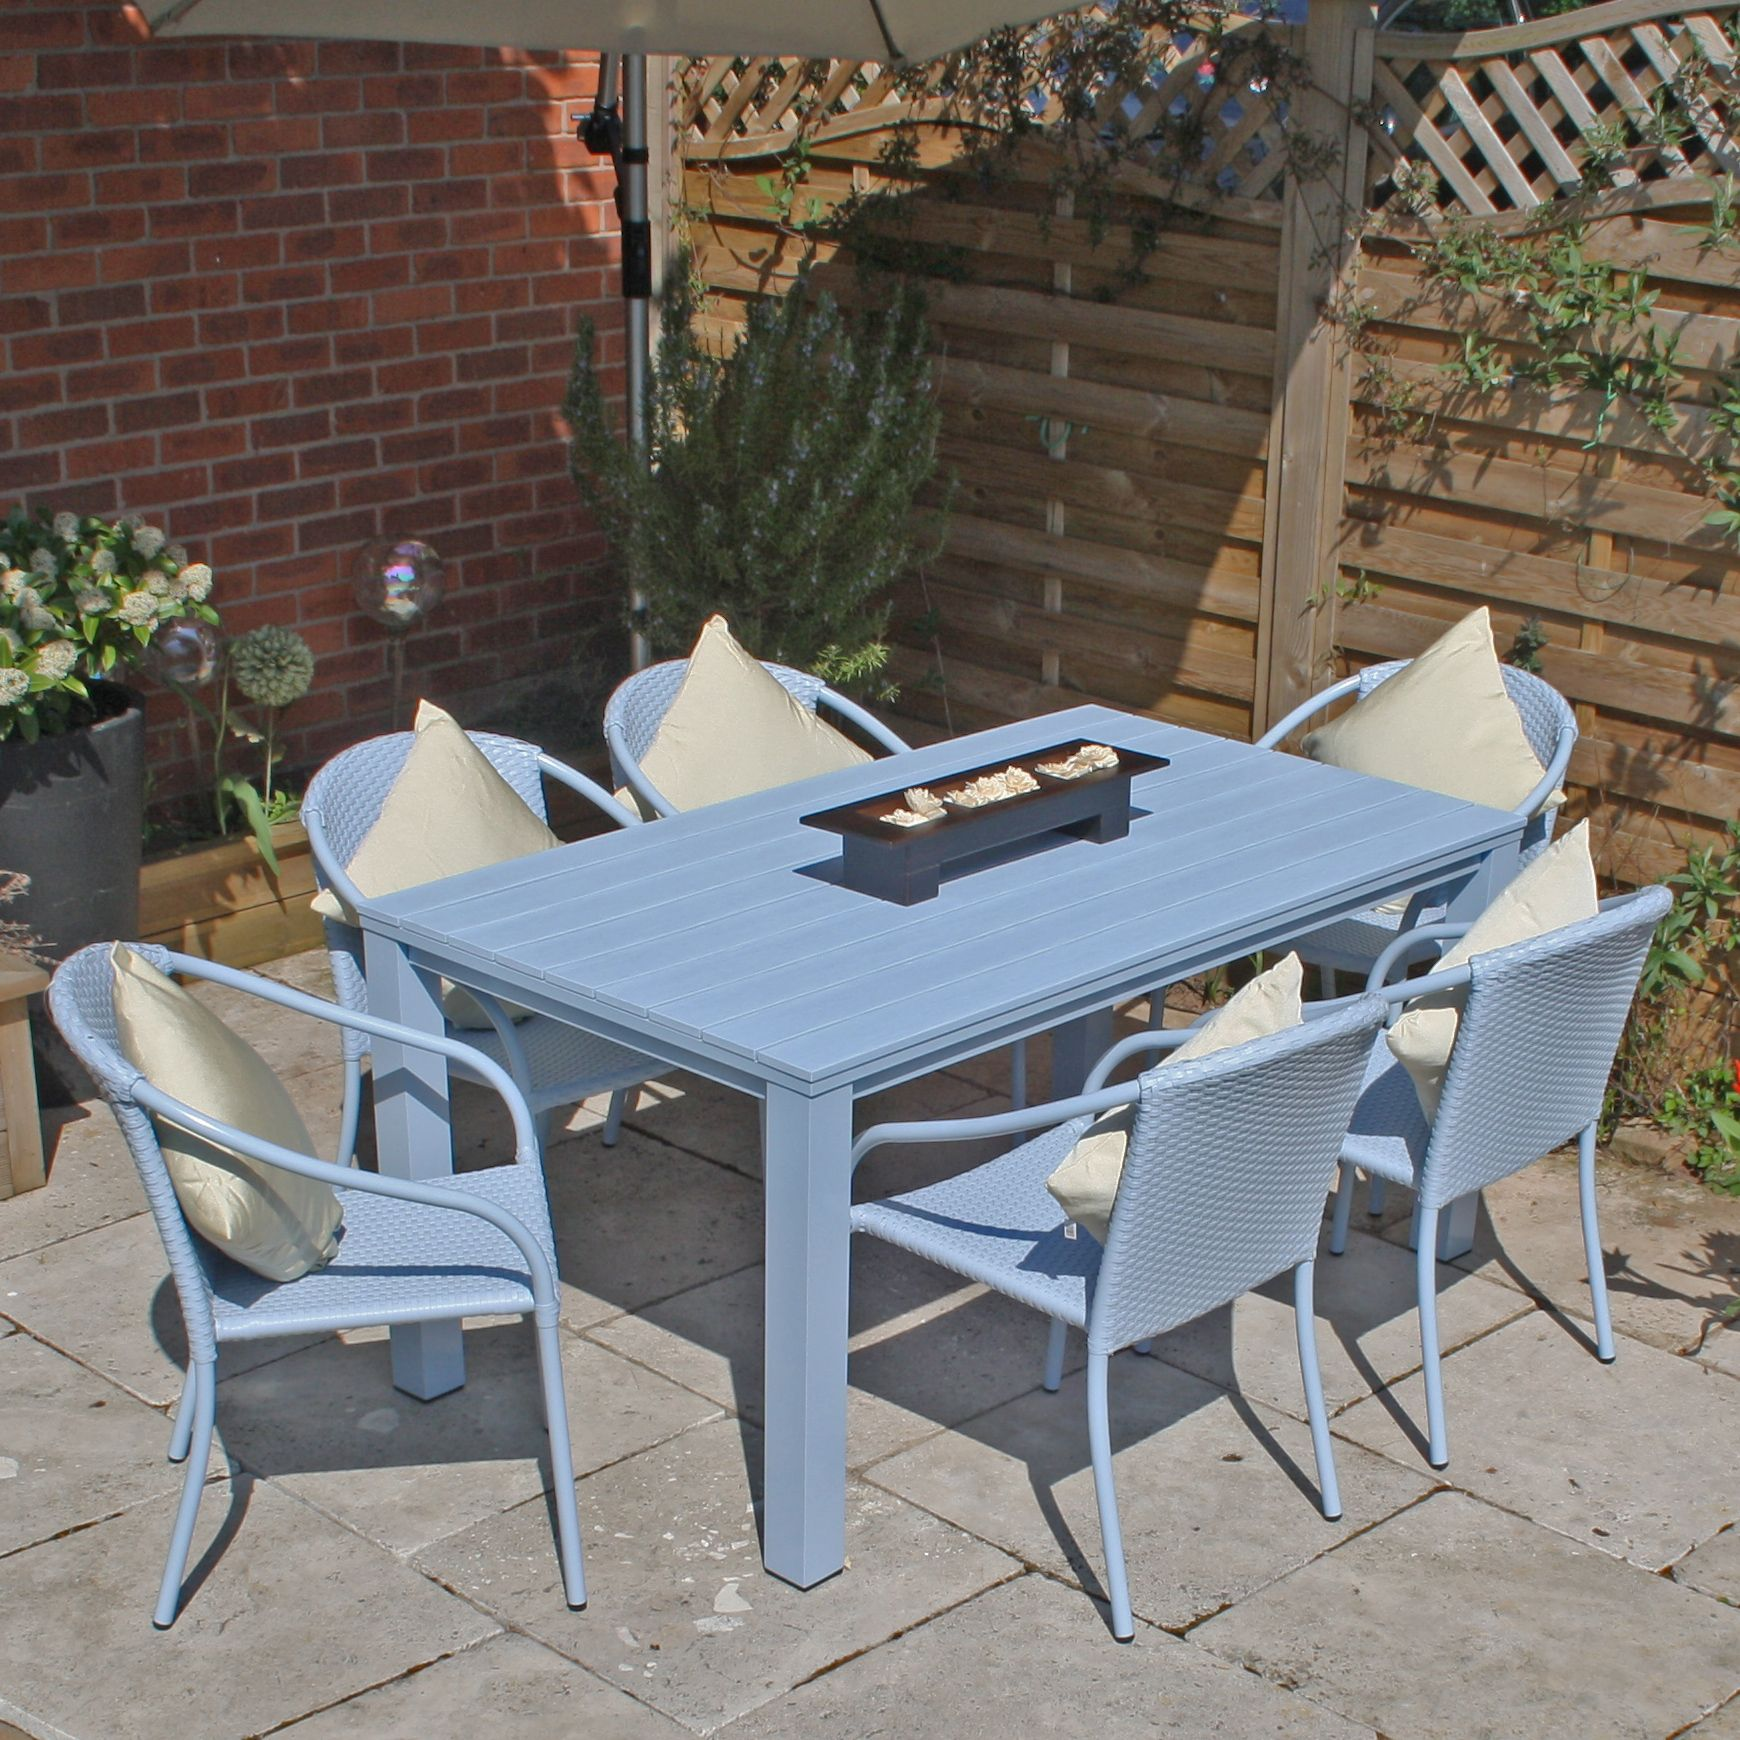 Hampton 6 Seat Farmhouse Rattan Garden Furniture Set - Blue